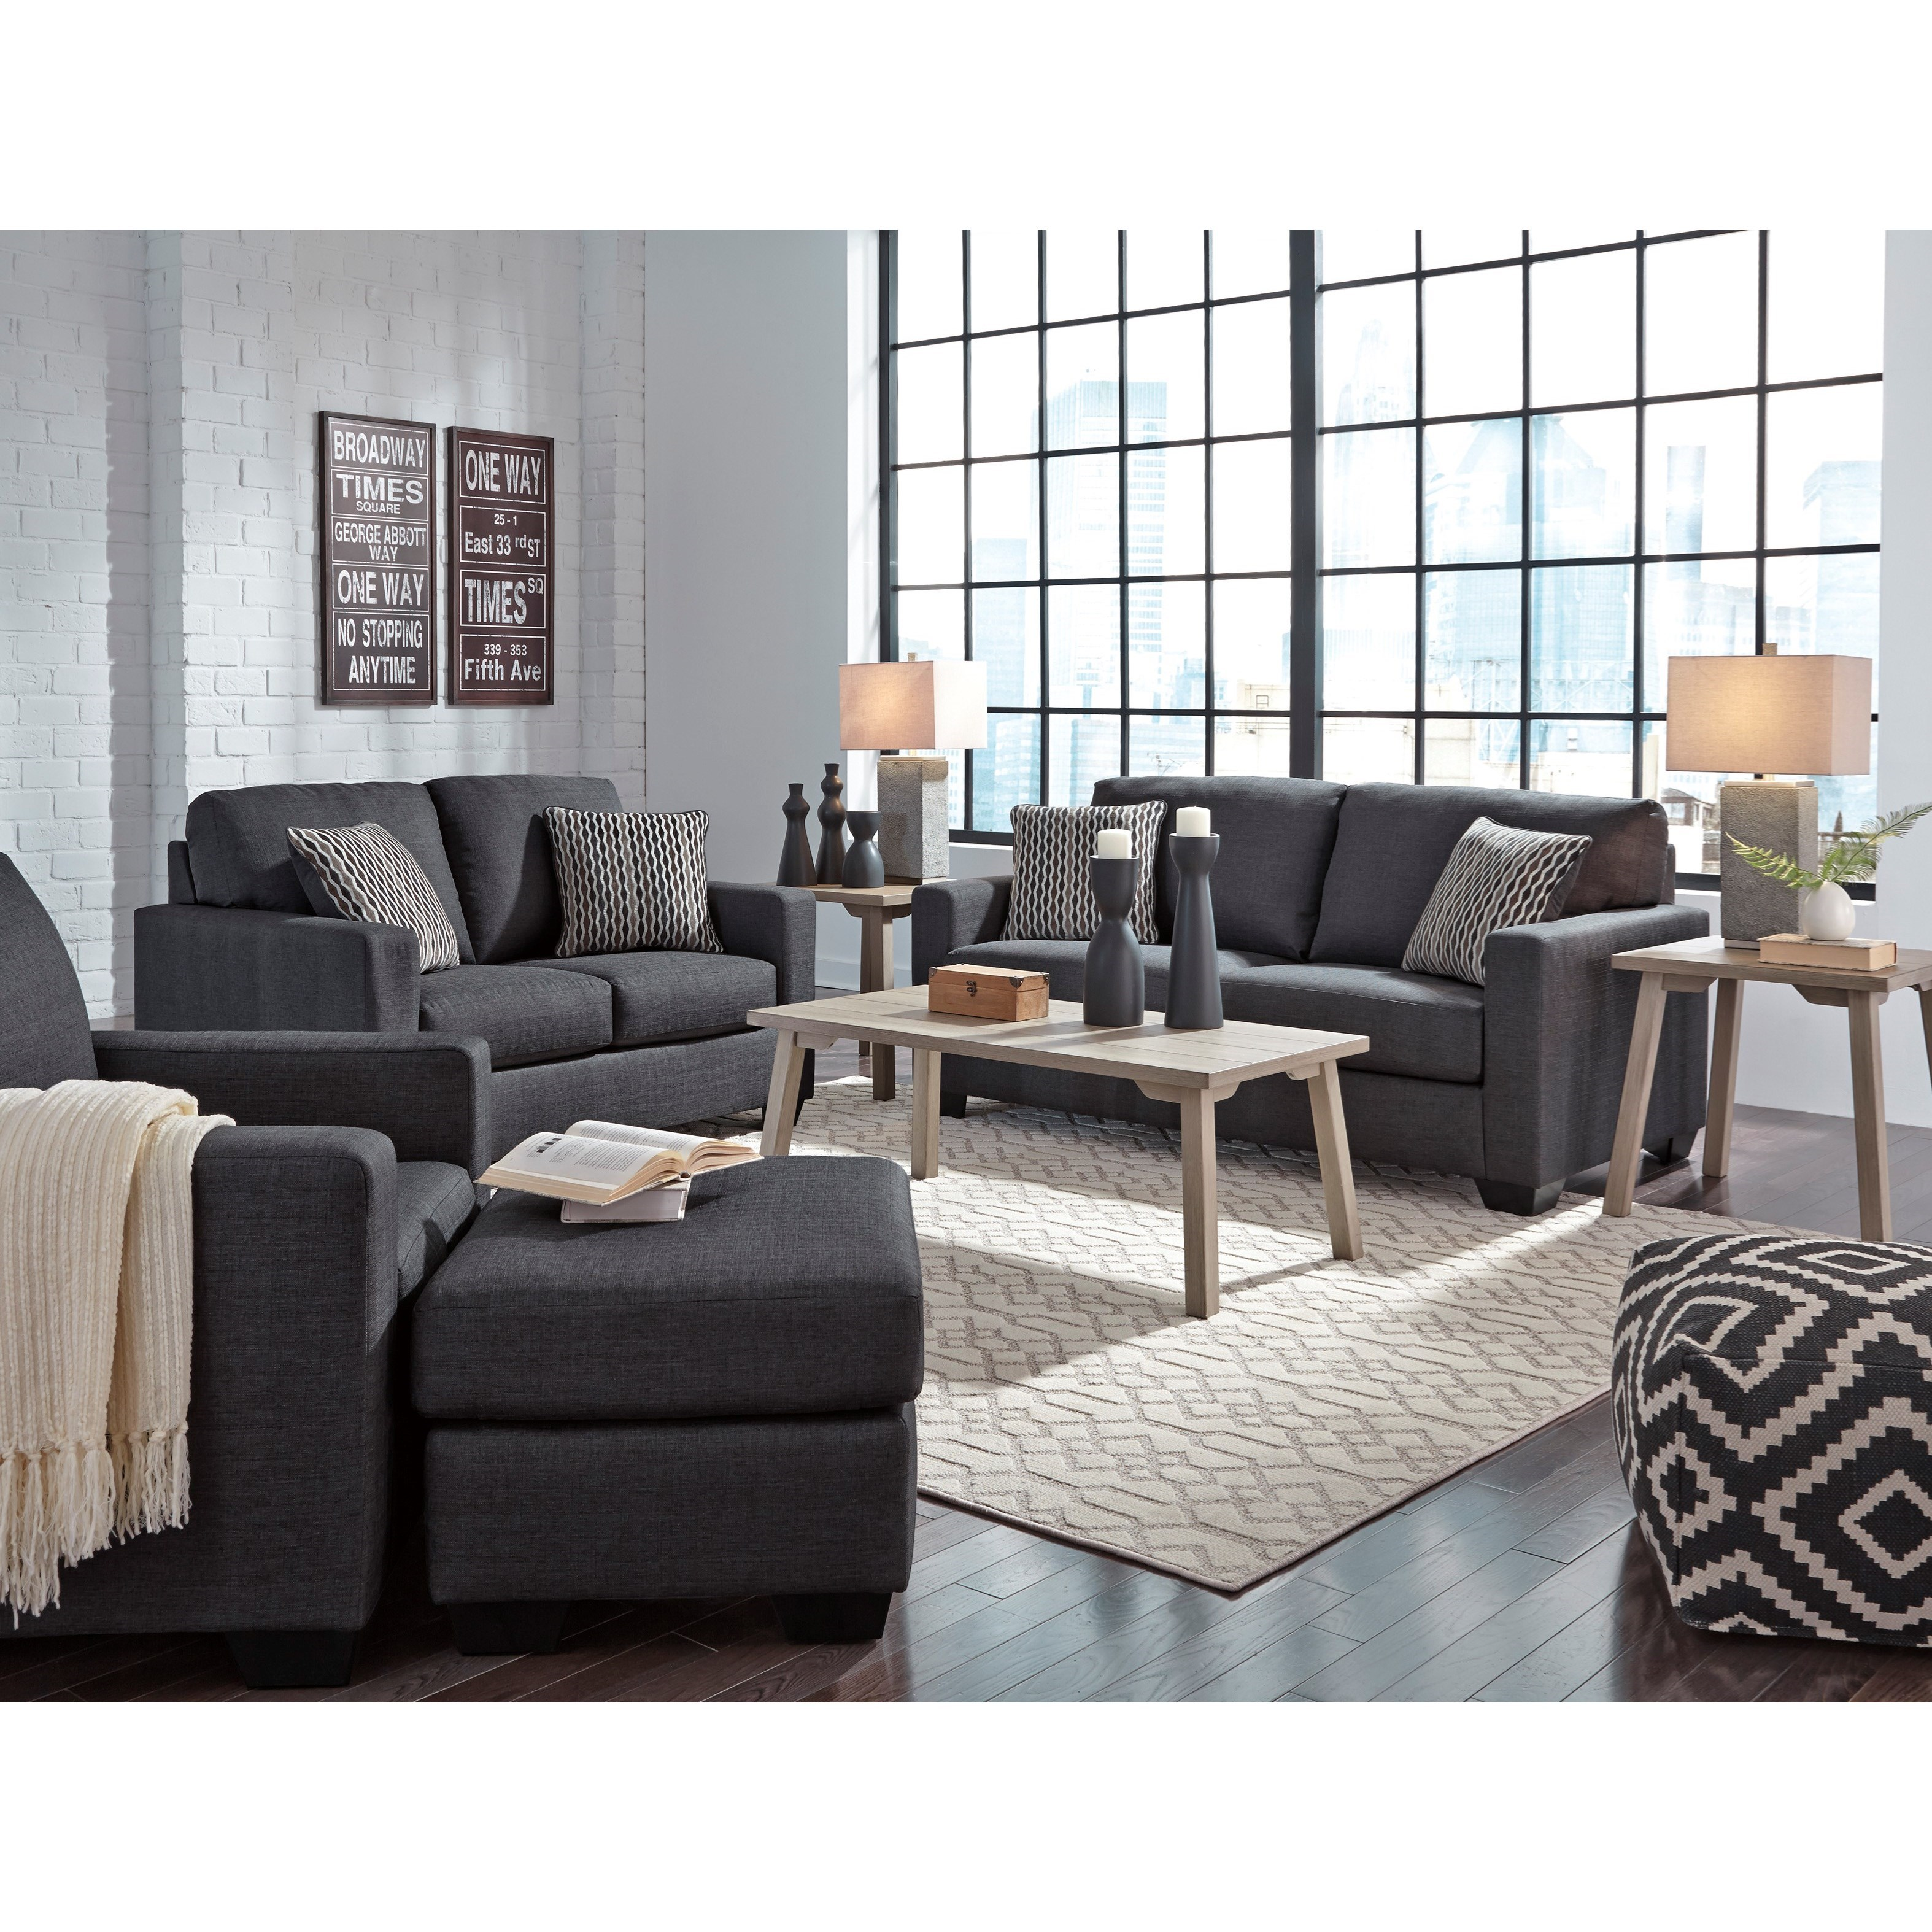 Benchcraft By Ashley Bavello Stationary Living Room Group Royal Furniture Stationary Living